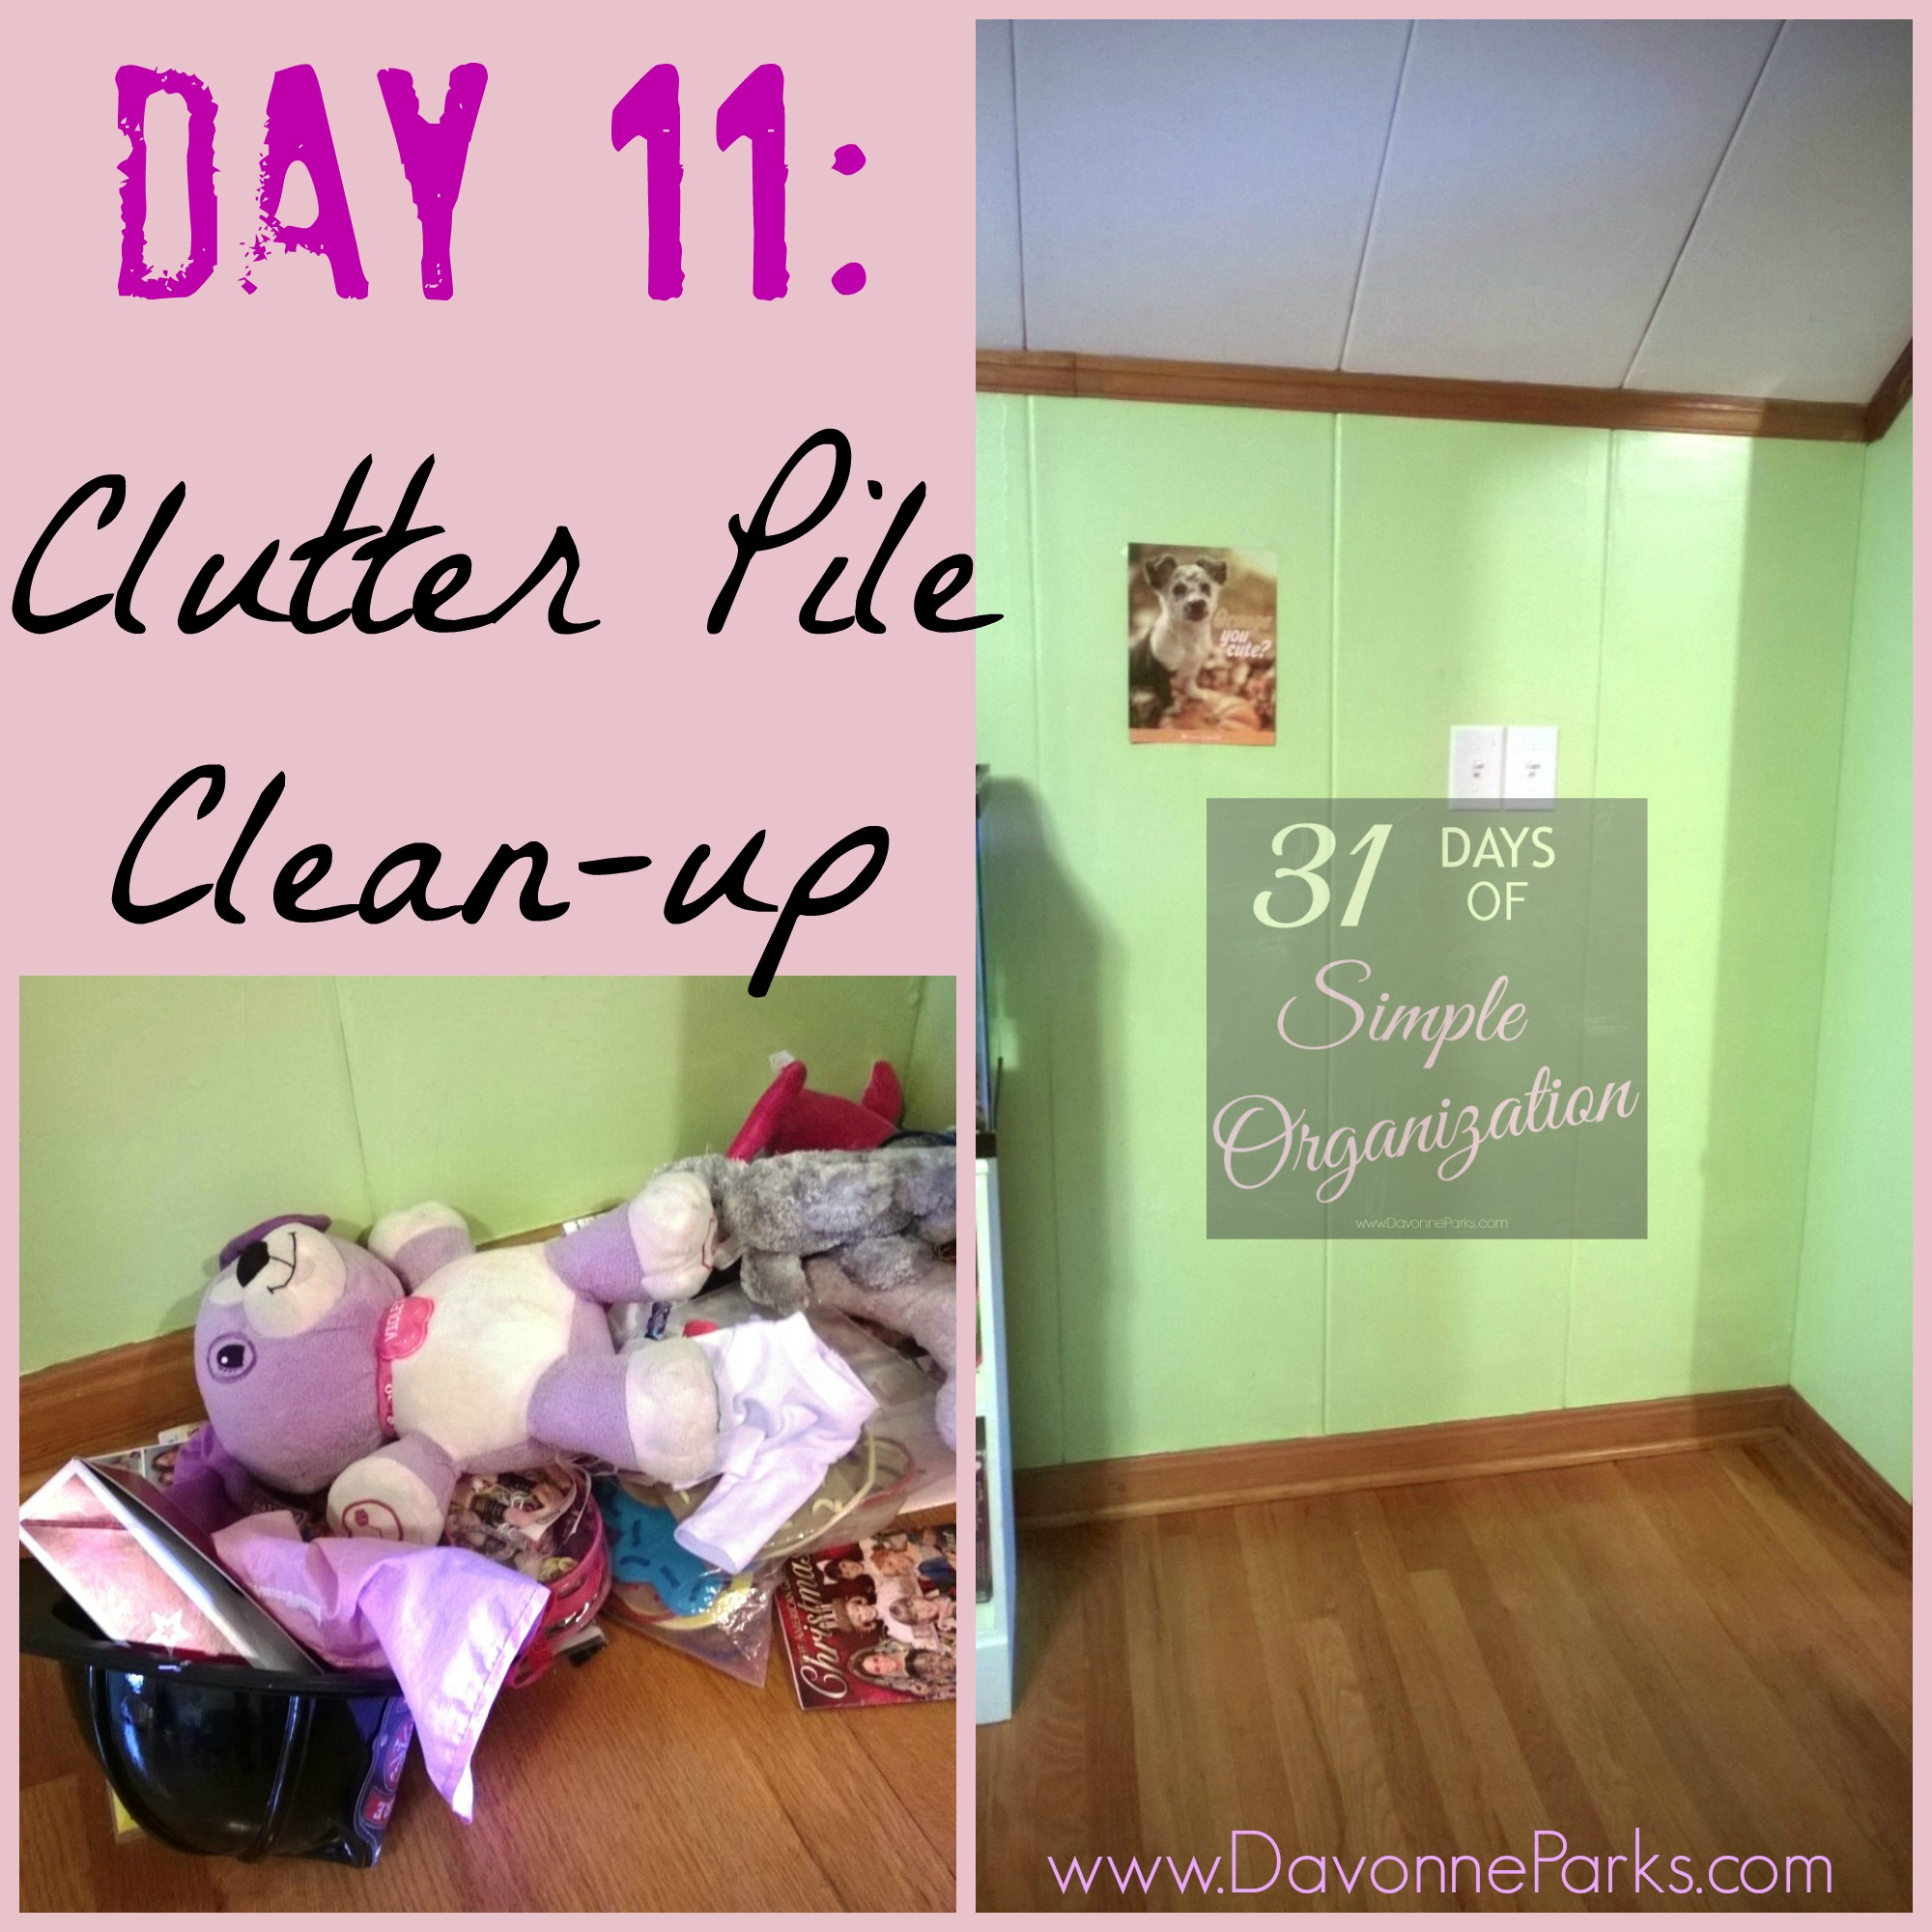 Clear a Clutter Pile